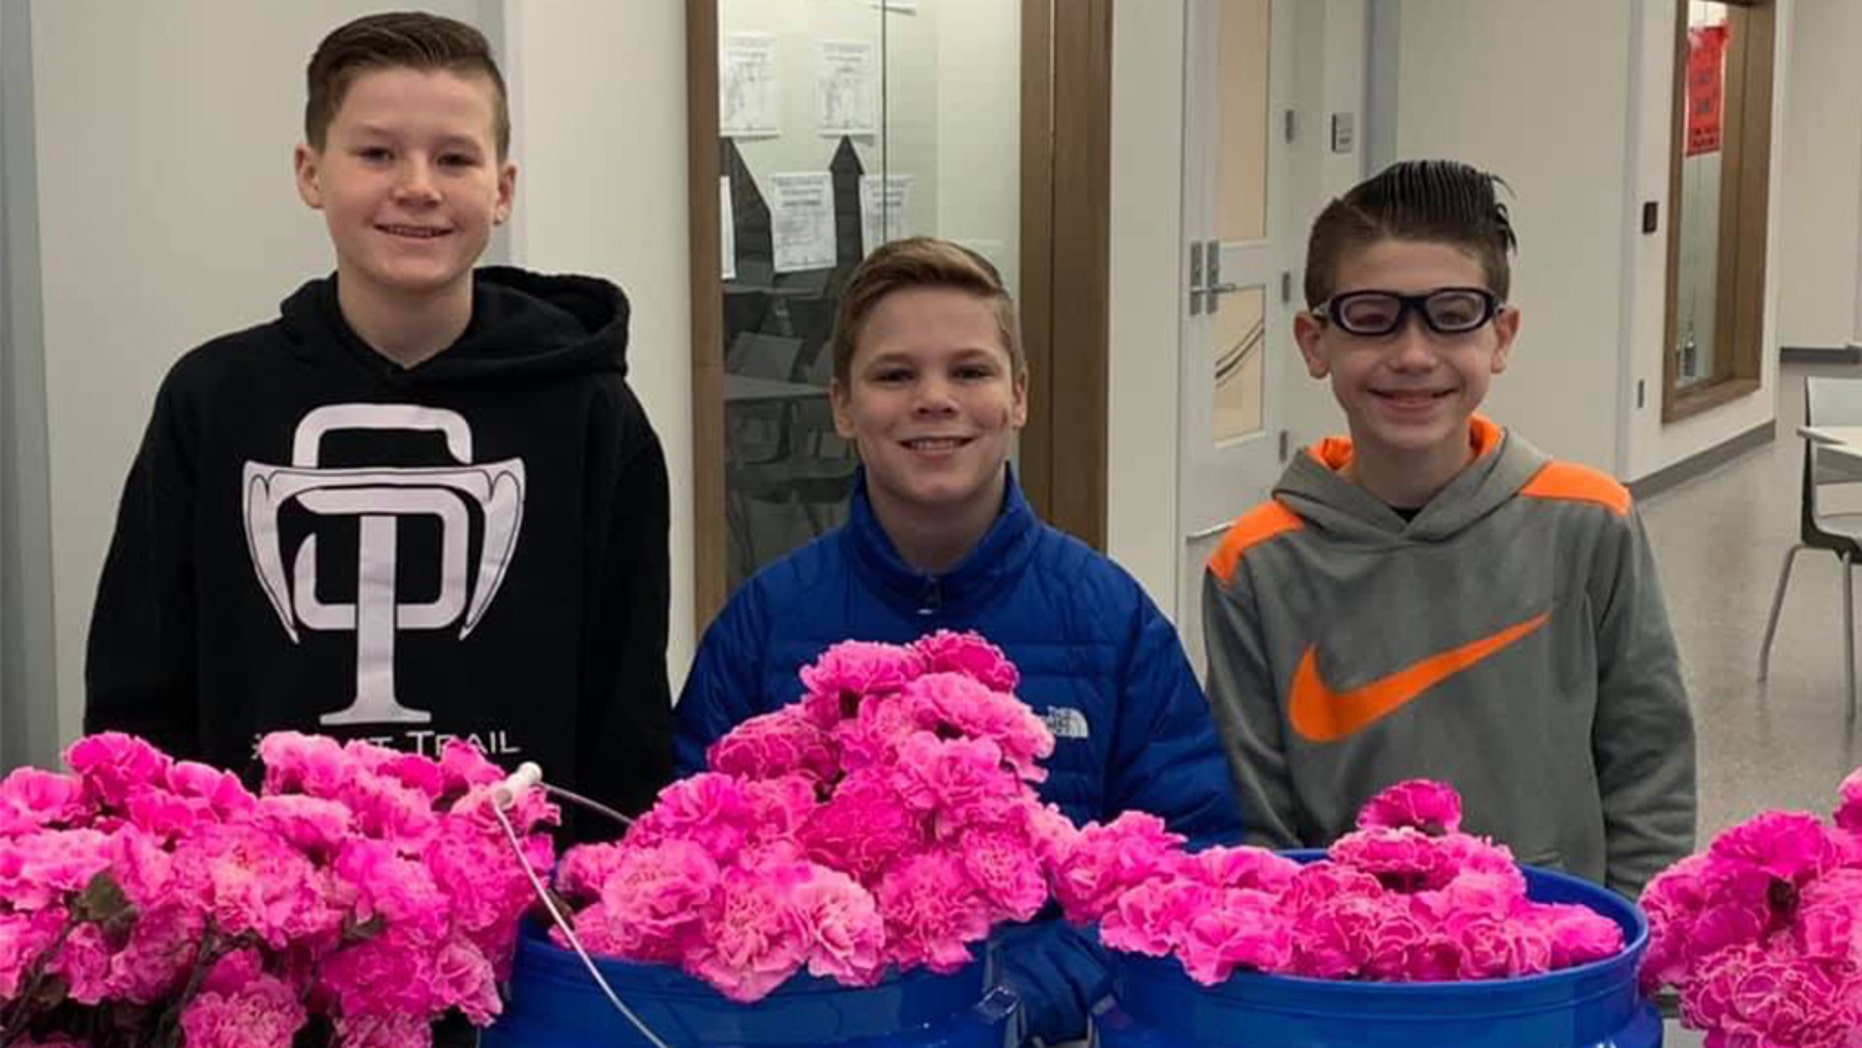 A group of young boys in Kansas reportedly had a Valentine's Day surprise for eachfemale at their middle school on Thursday.